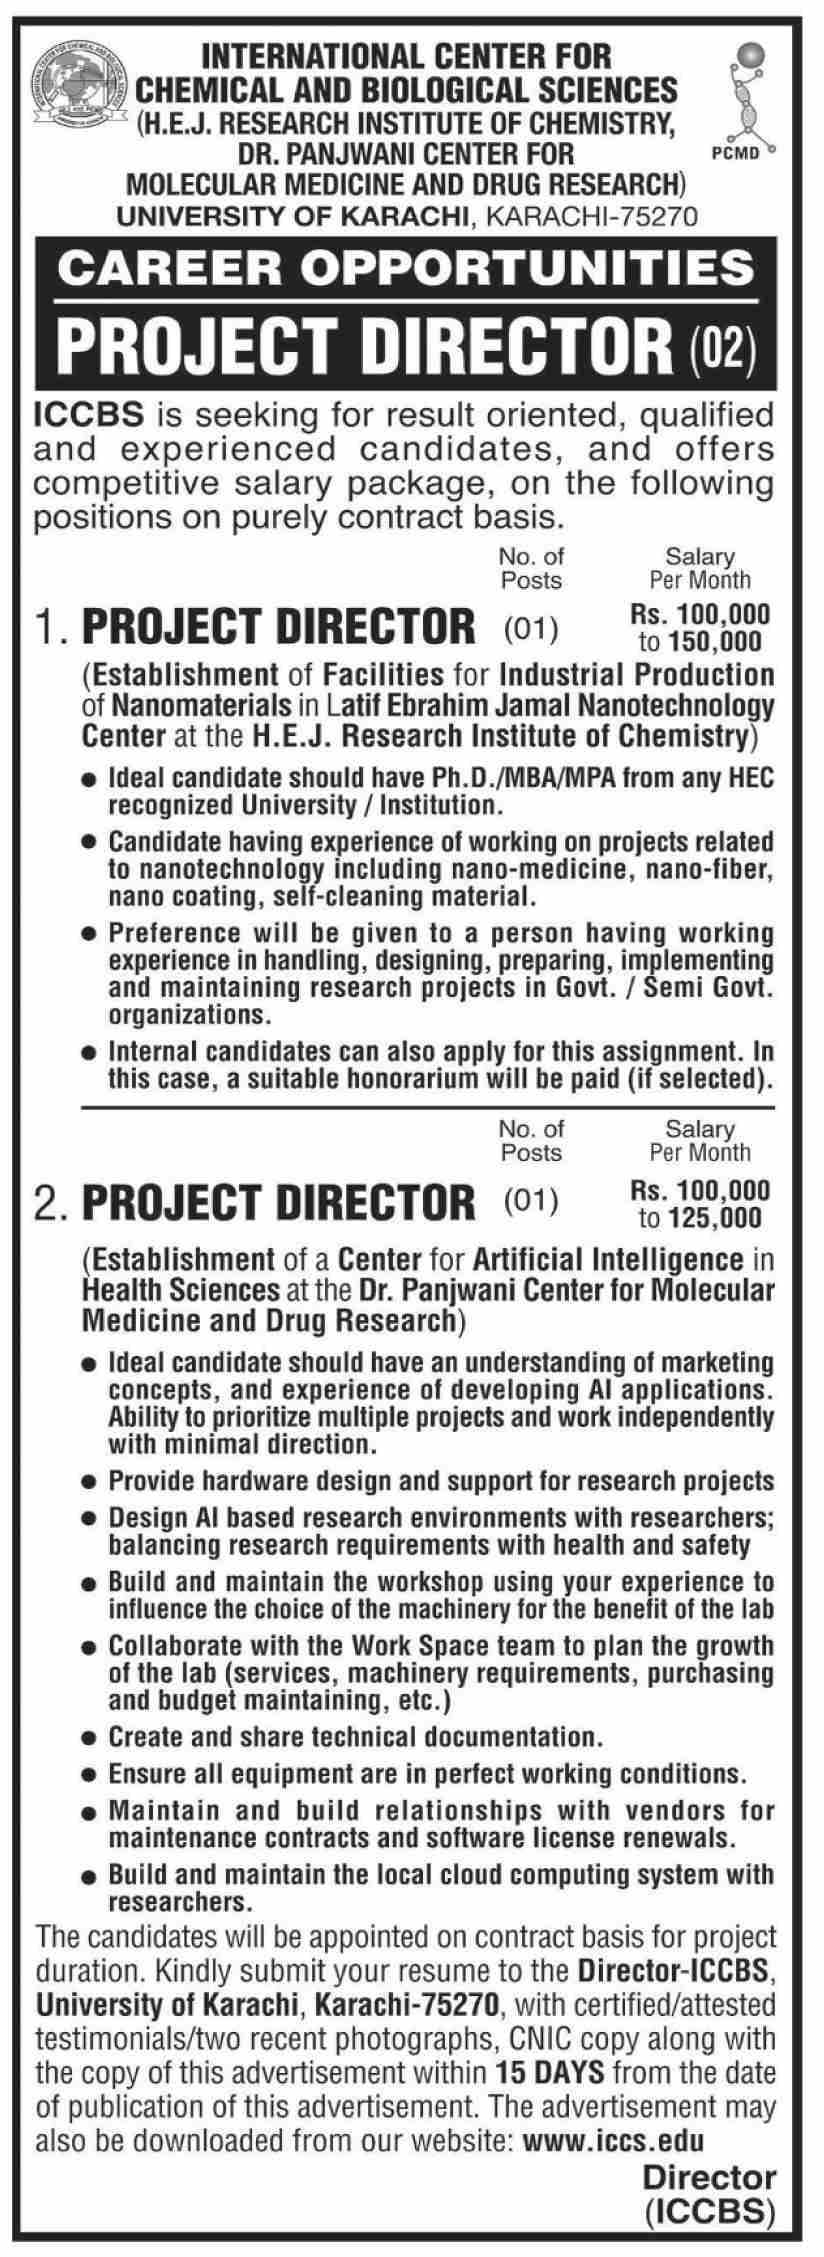 International Center For Chemical And Biological Sciences University Jobs in Pakistan Jobs 2021 - Download Application Form - www.iccs.edu